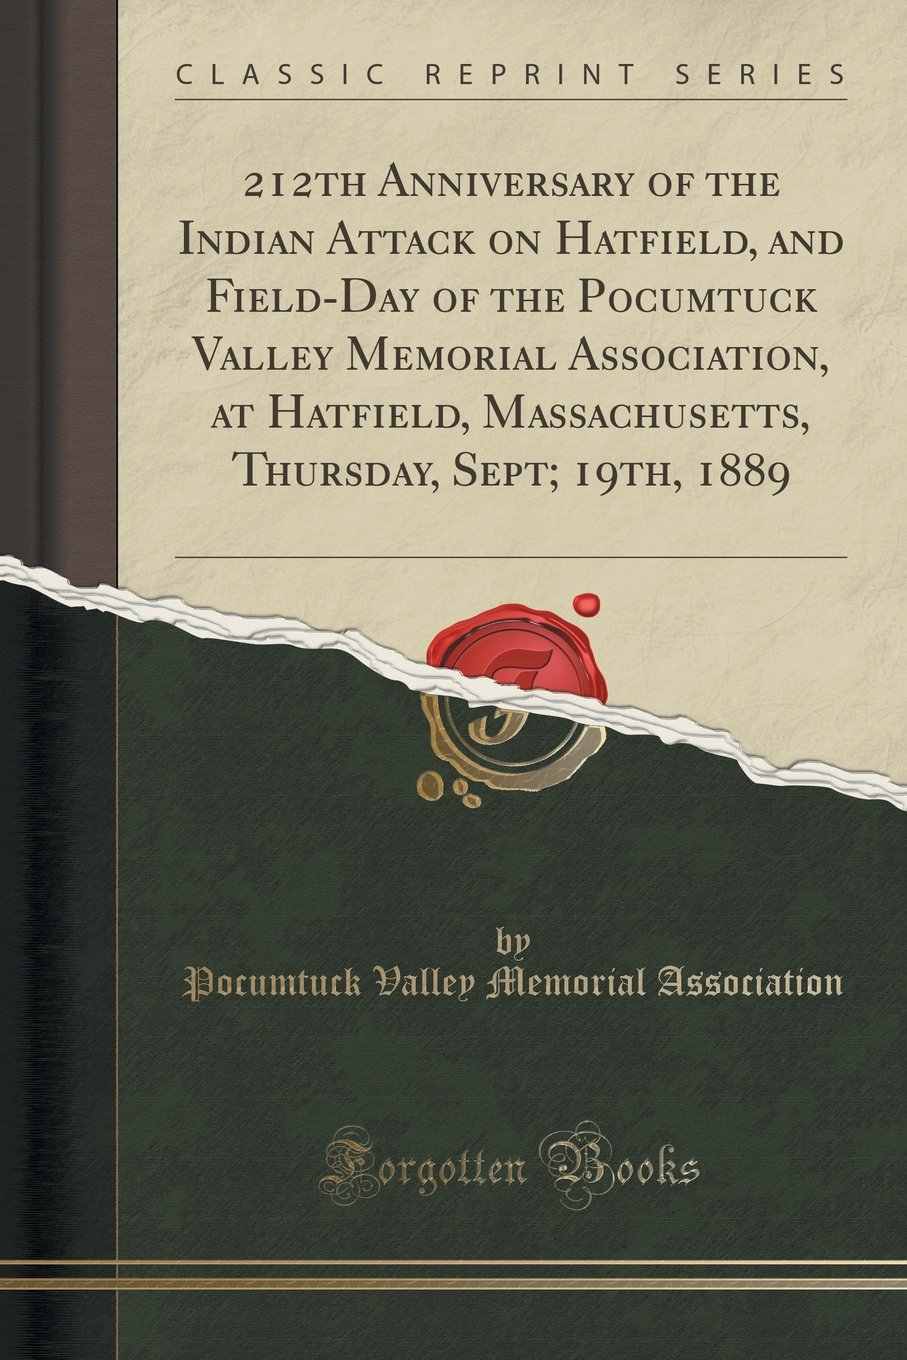 212th Anniversary of the Indian Attack on Hatfield, and Field-Day of the Pocumtuck Valley Memorial Association, at Hatfield, Massachusetts, Thursday, Sept; 19th, 1889 (Classic Reprint)